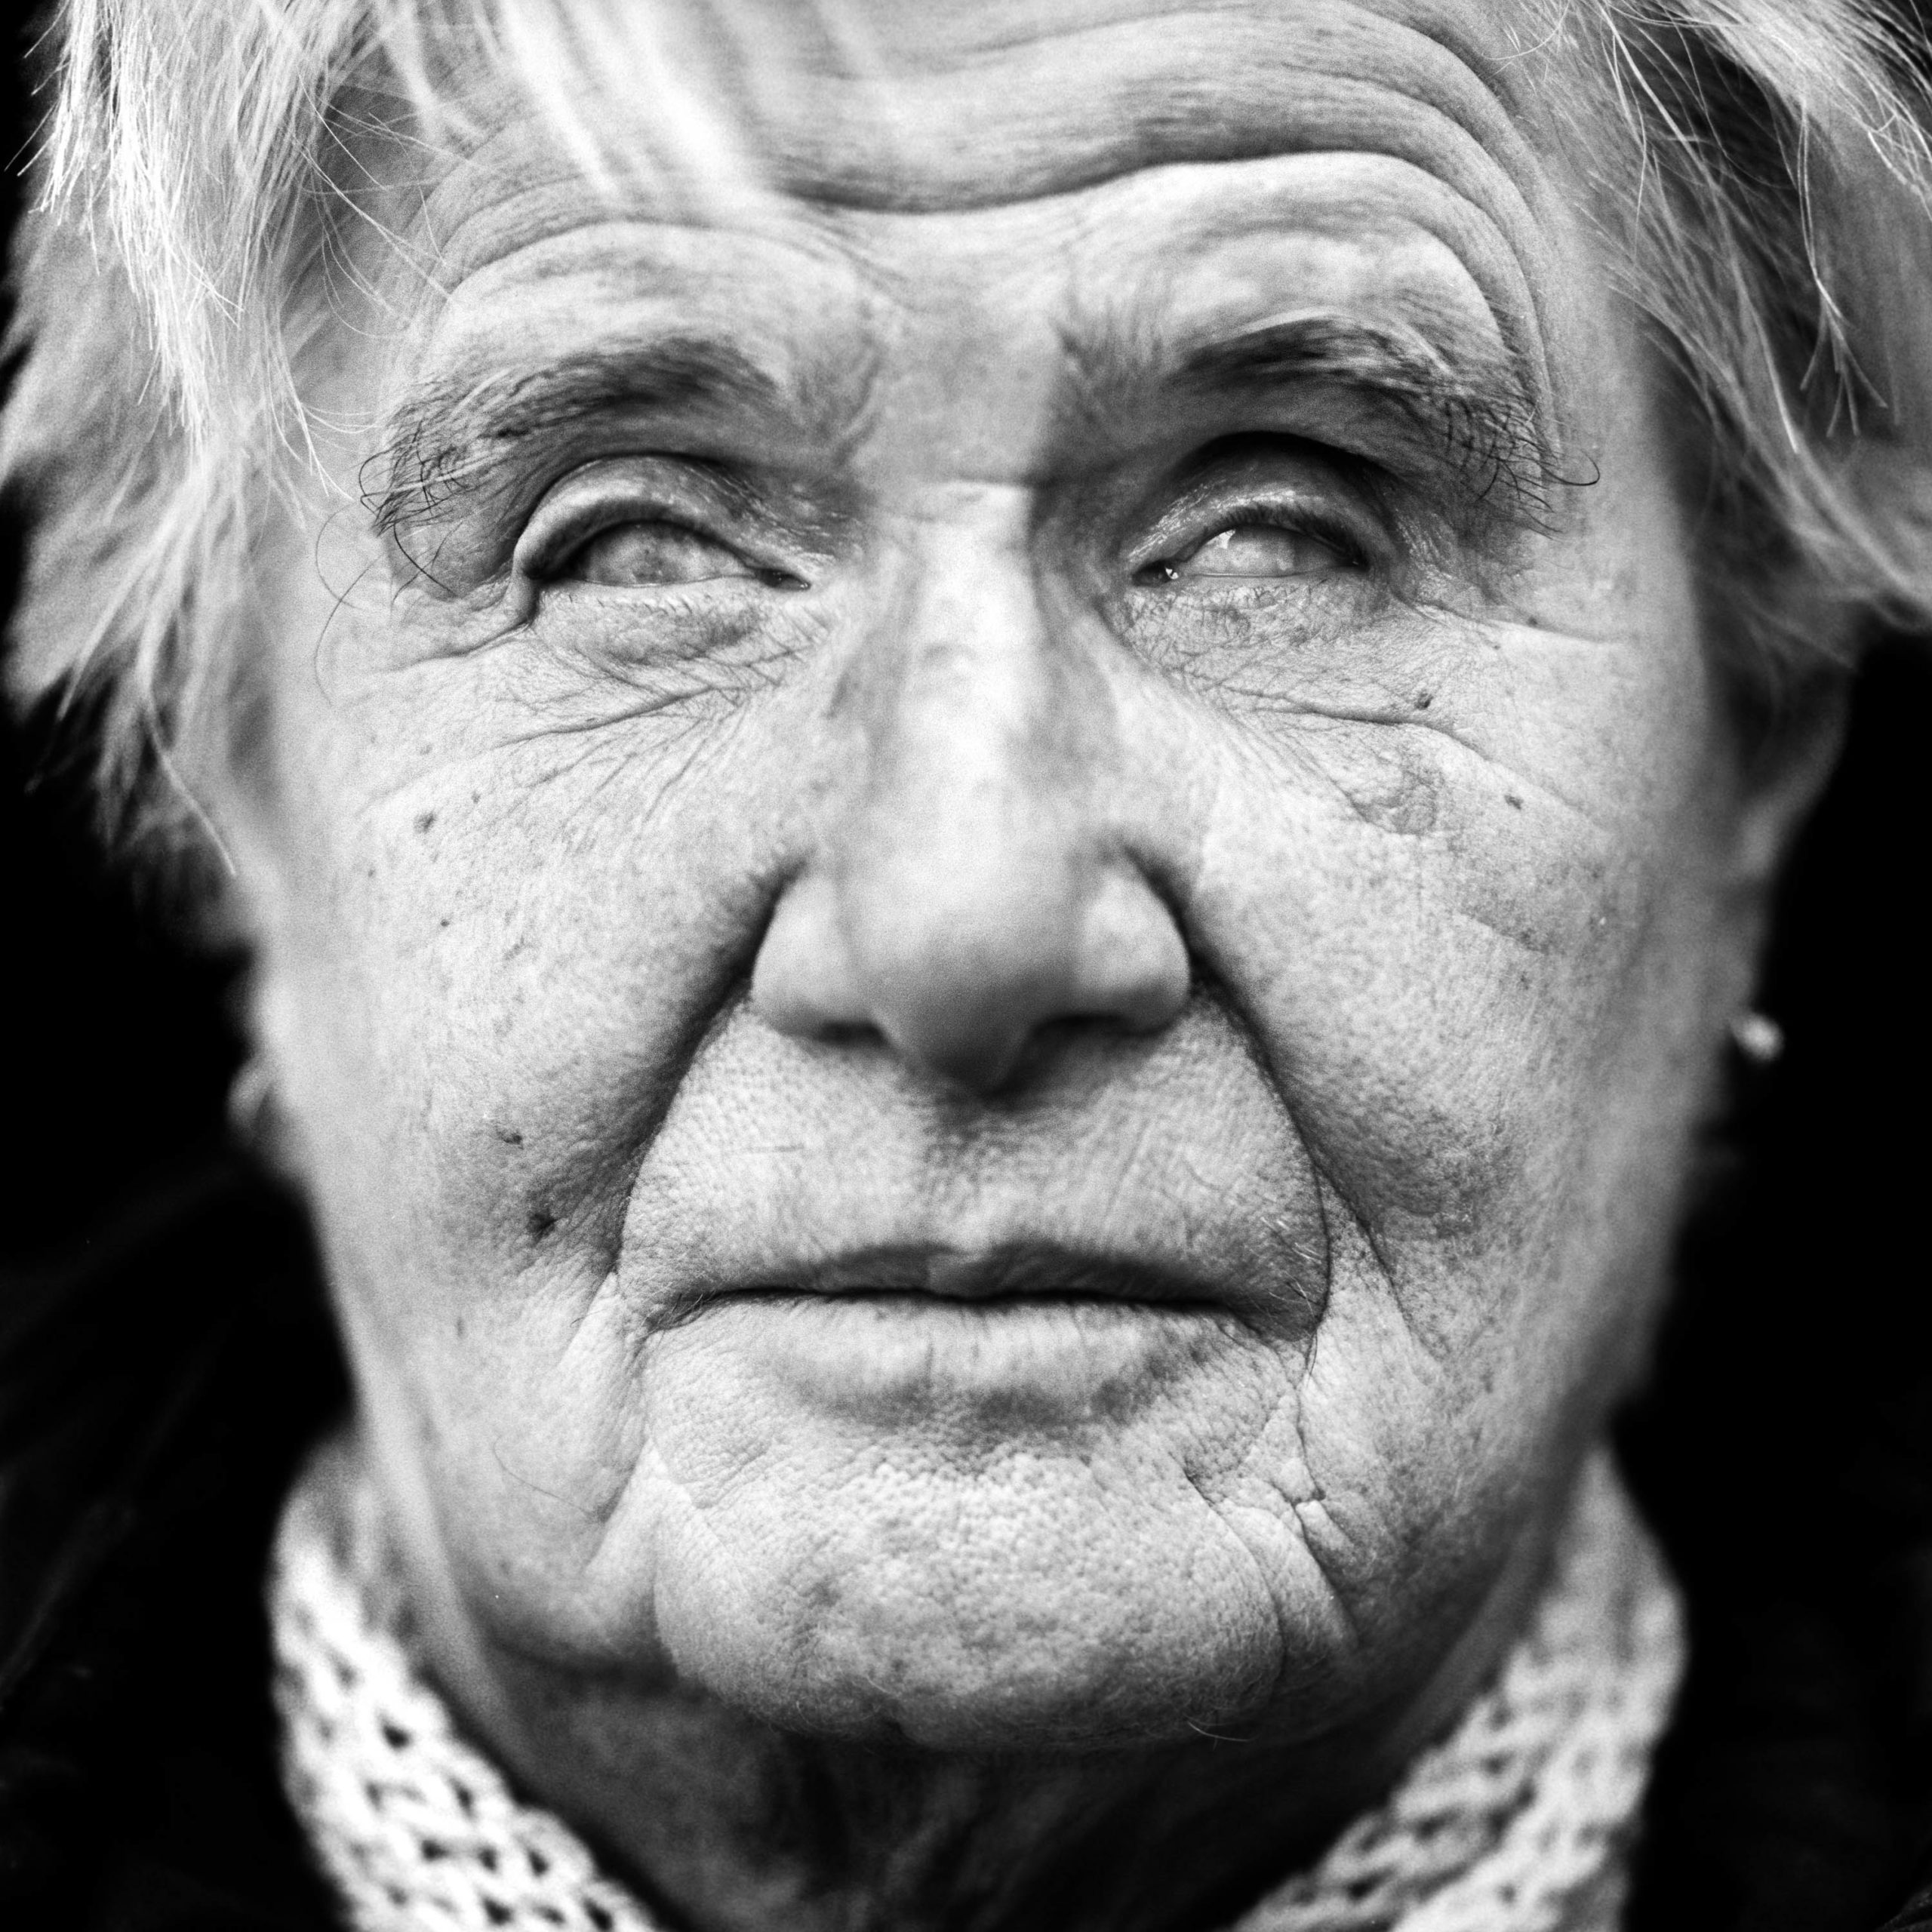 """Irene Kondraschow (USSR, 1940). Interview outtake: """"In March 1944, my mother took me to see some new baby lambs. she noticed that I couldn't see them at all. (…) Vitamin deficiency was the cause of my blindness. It was due to the shortage of food during the war years."""""""